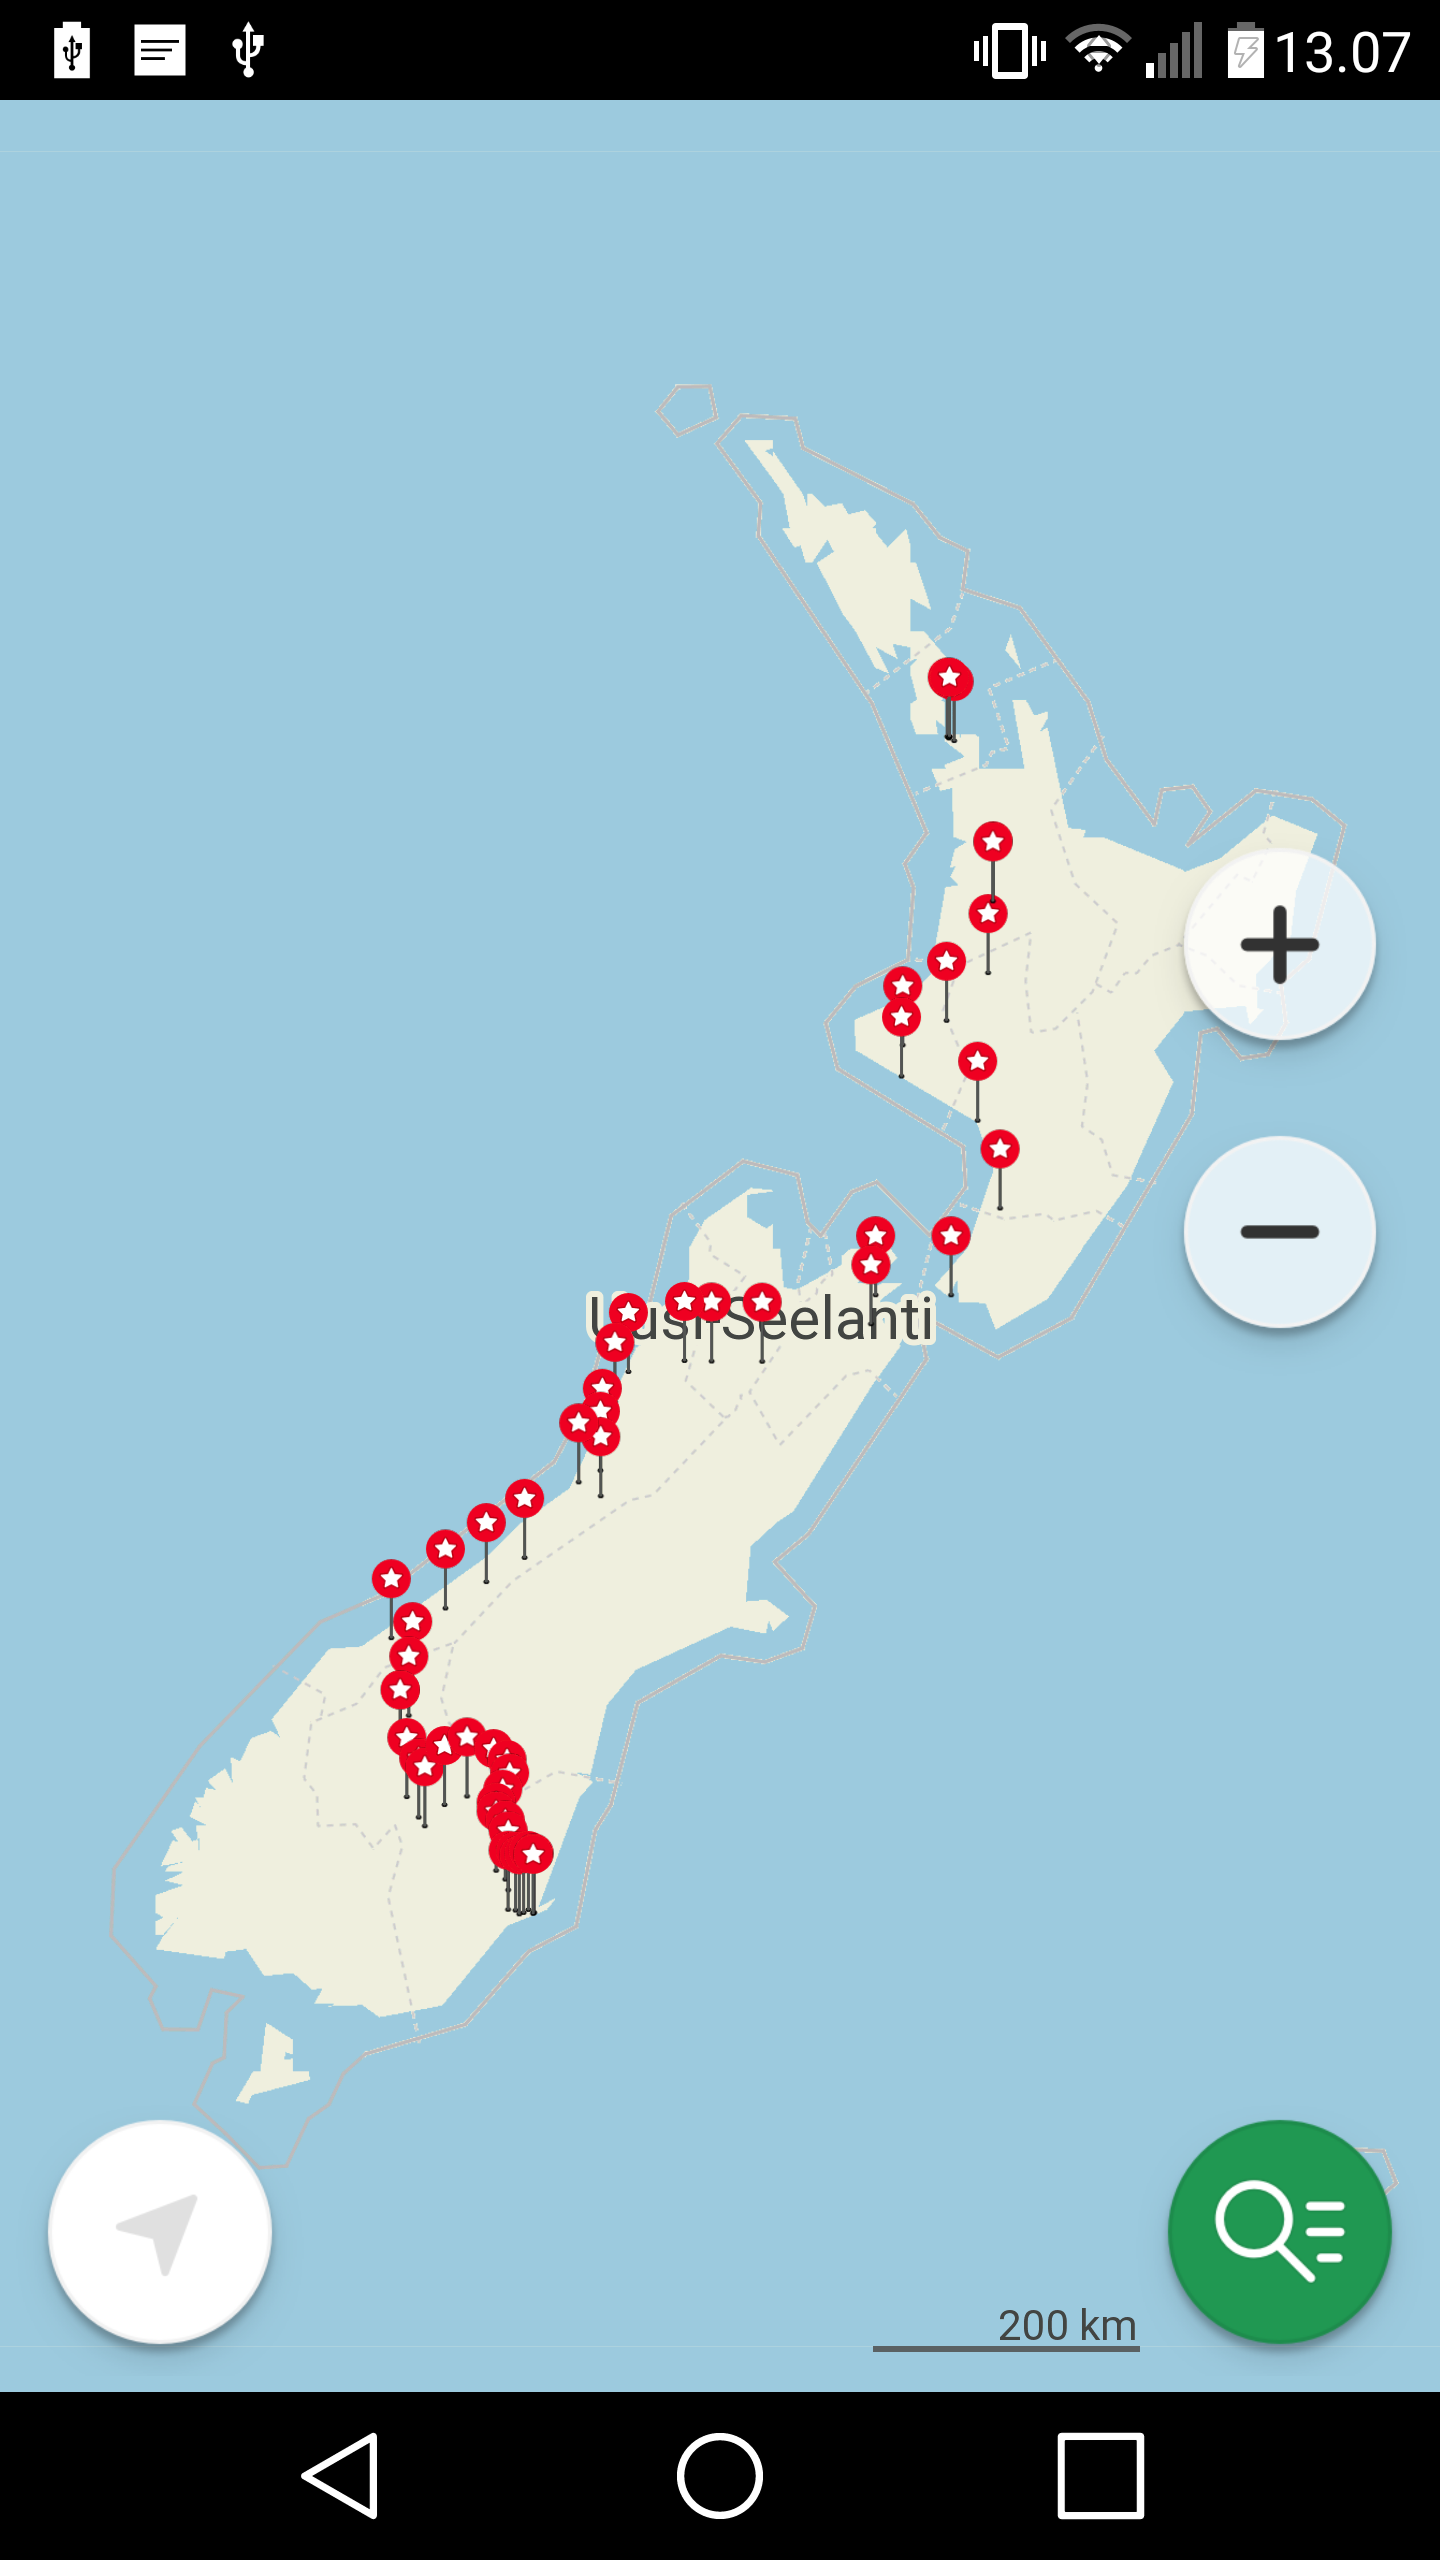 This was my route. Took about 2000 kilometers of cycling.